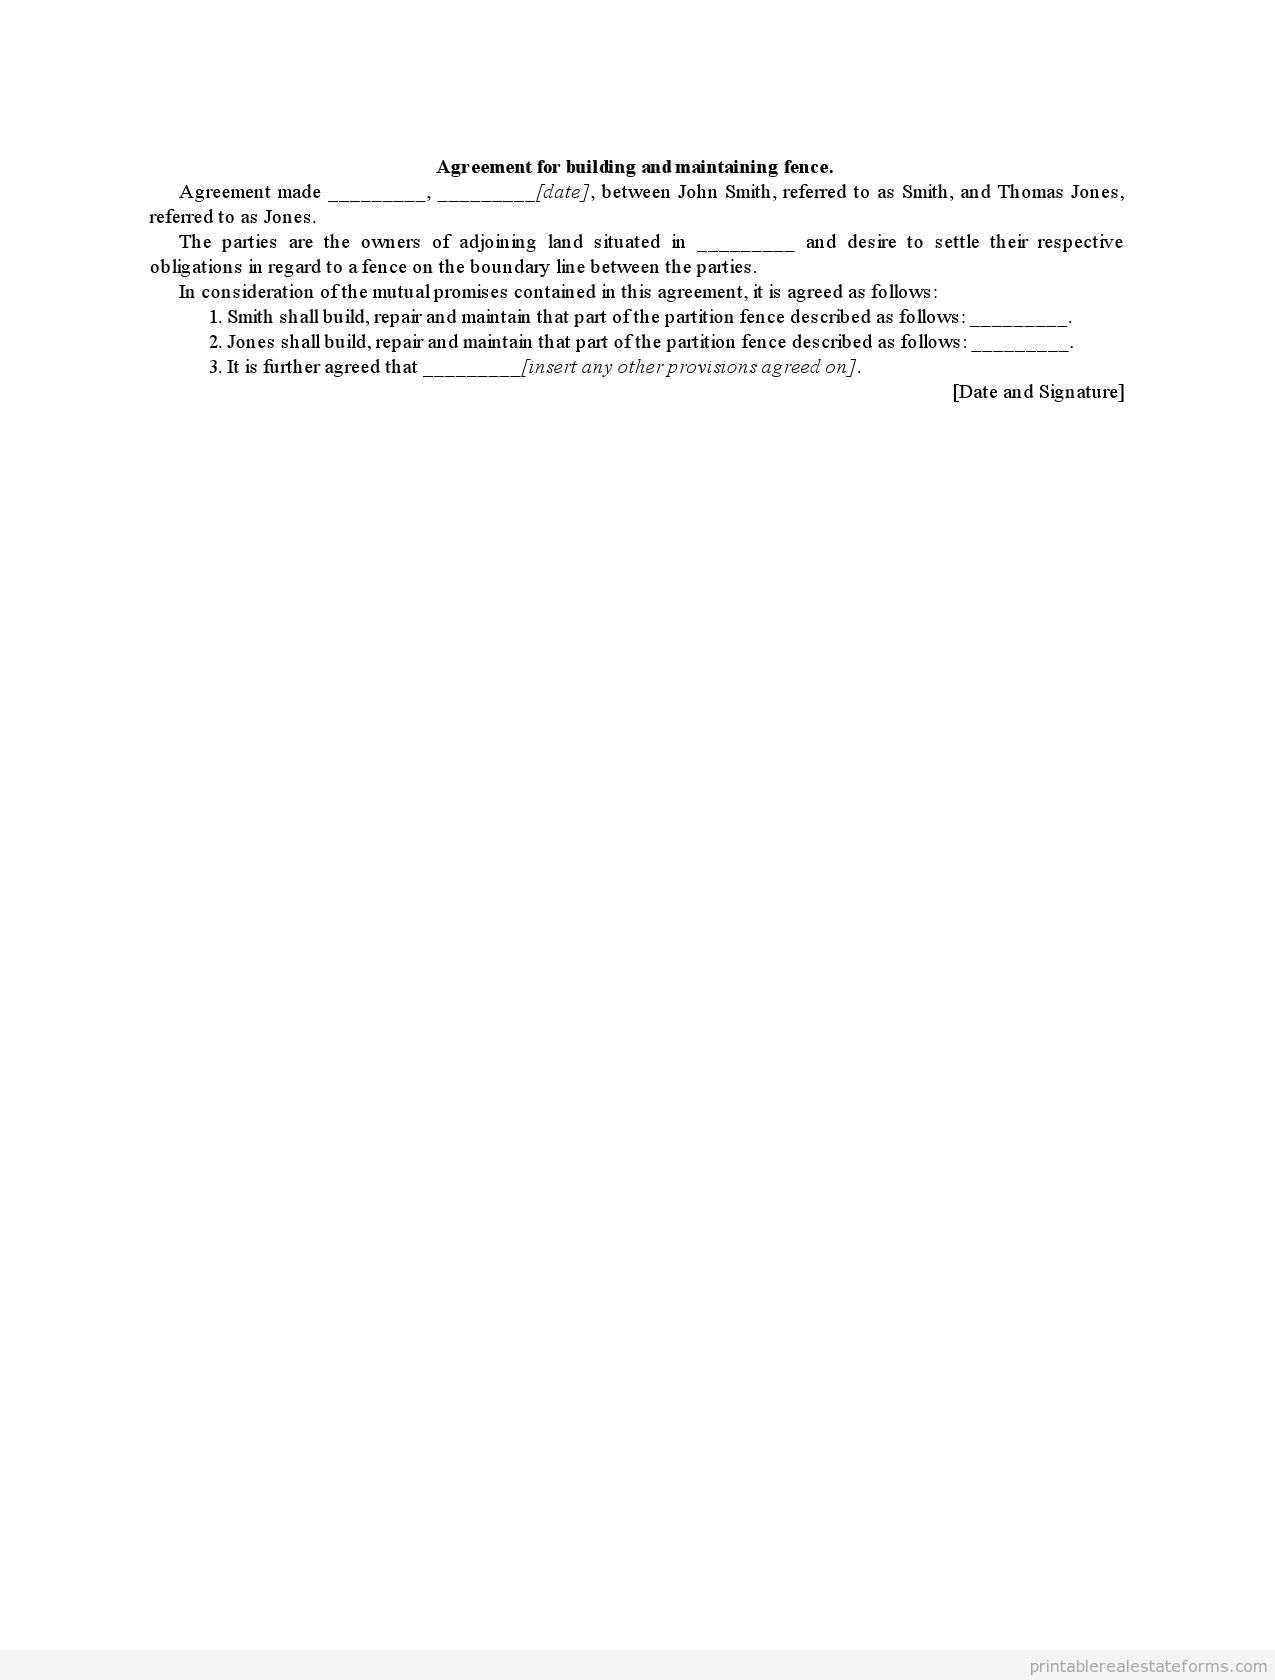 Sample Printable Agreement For Building And Maintaining